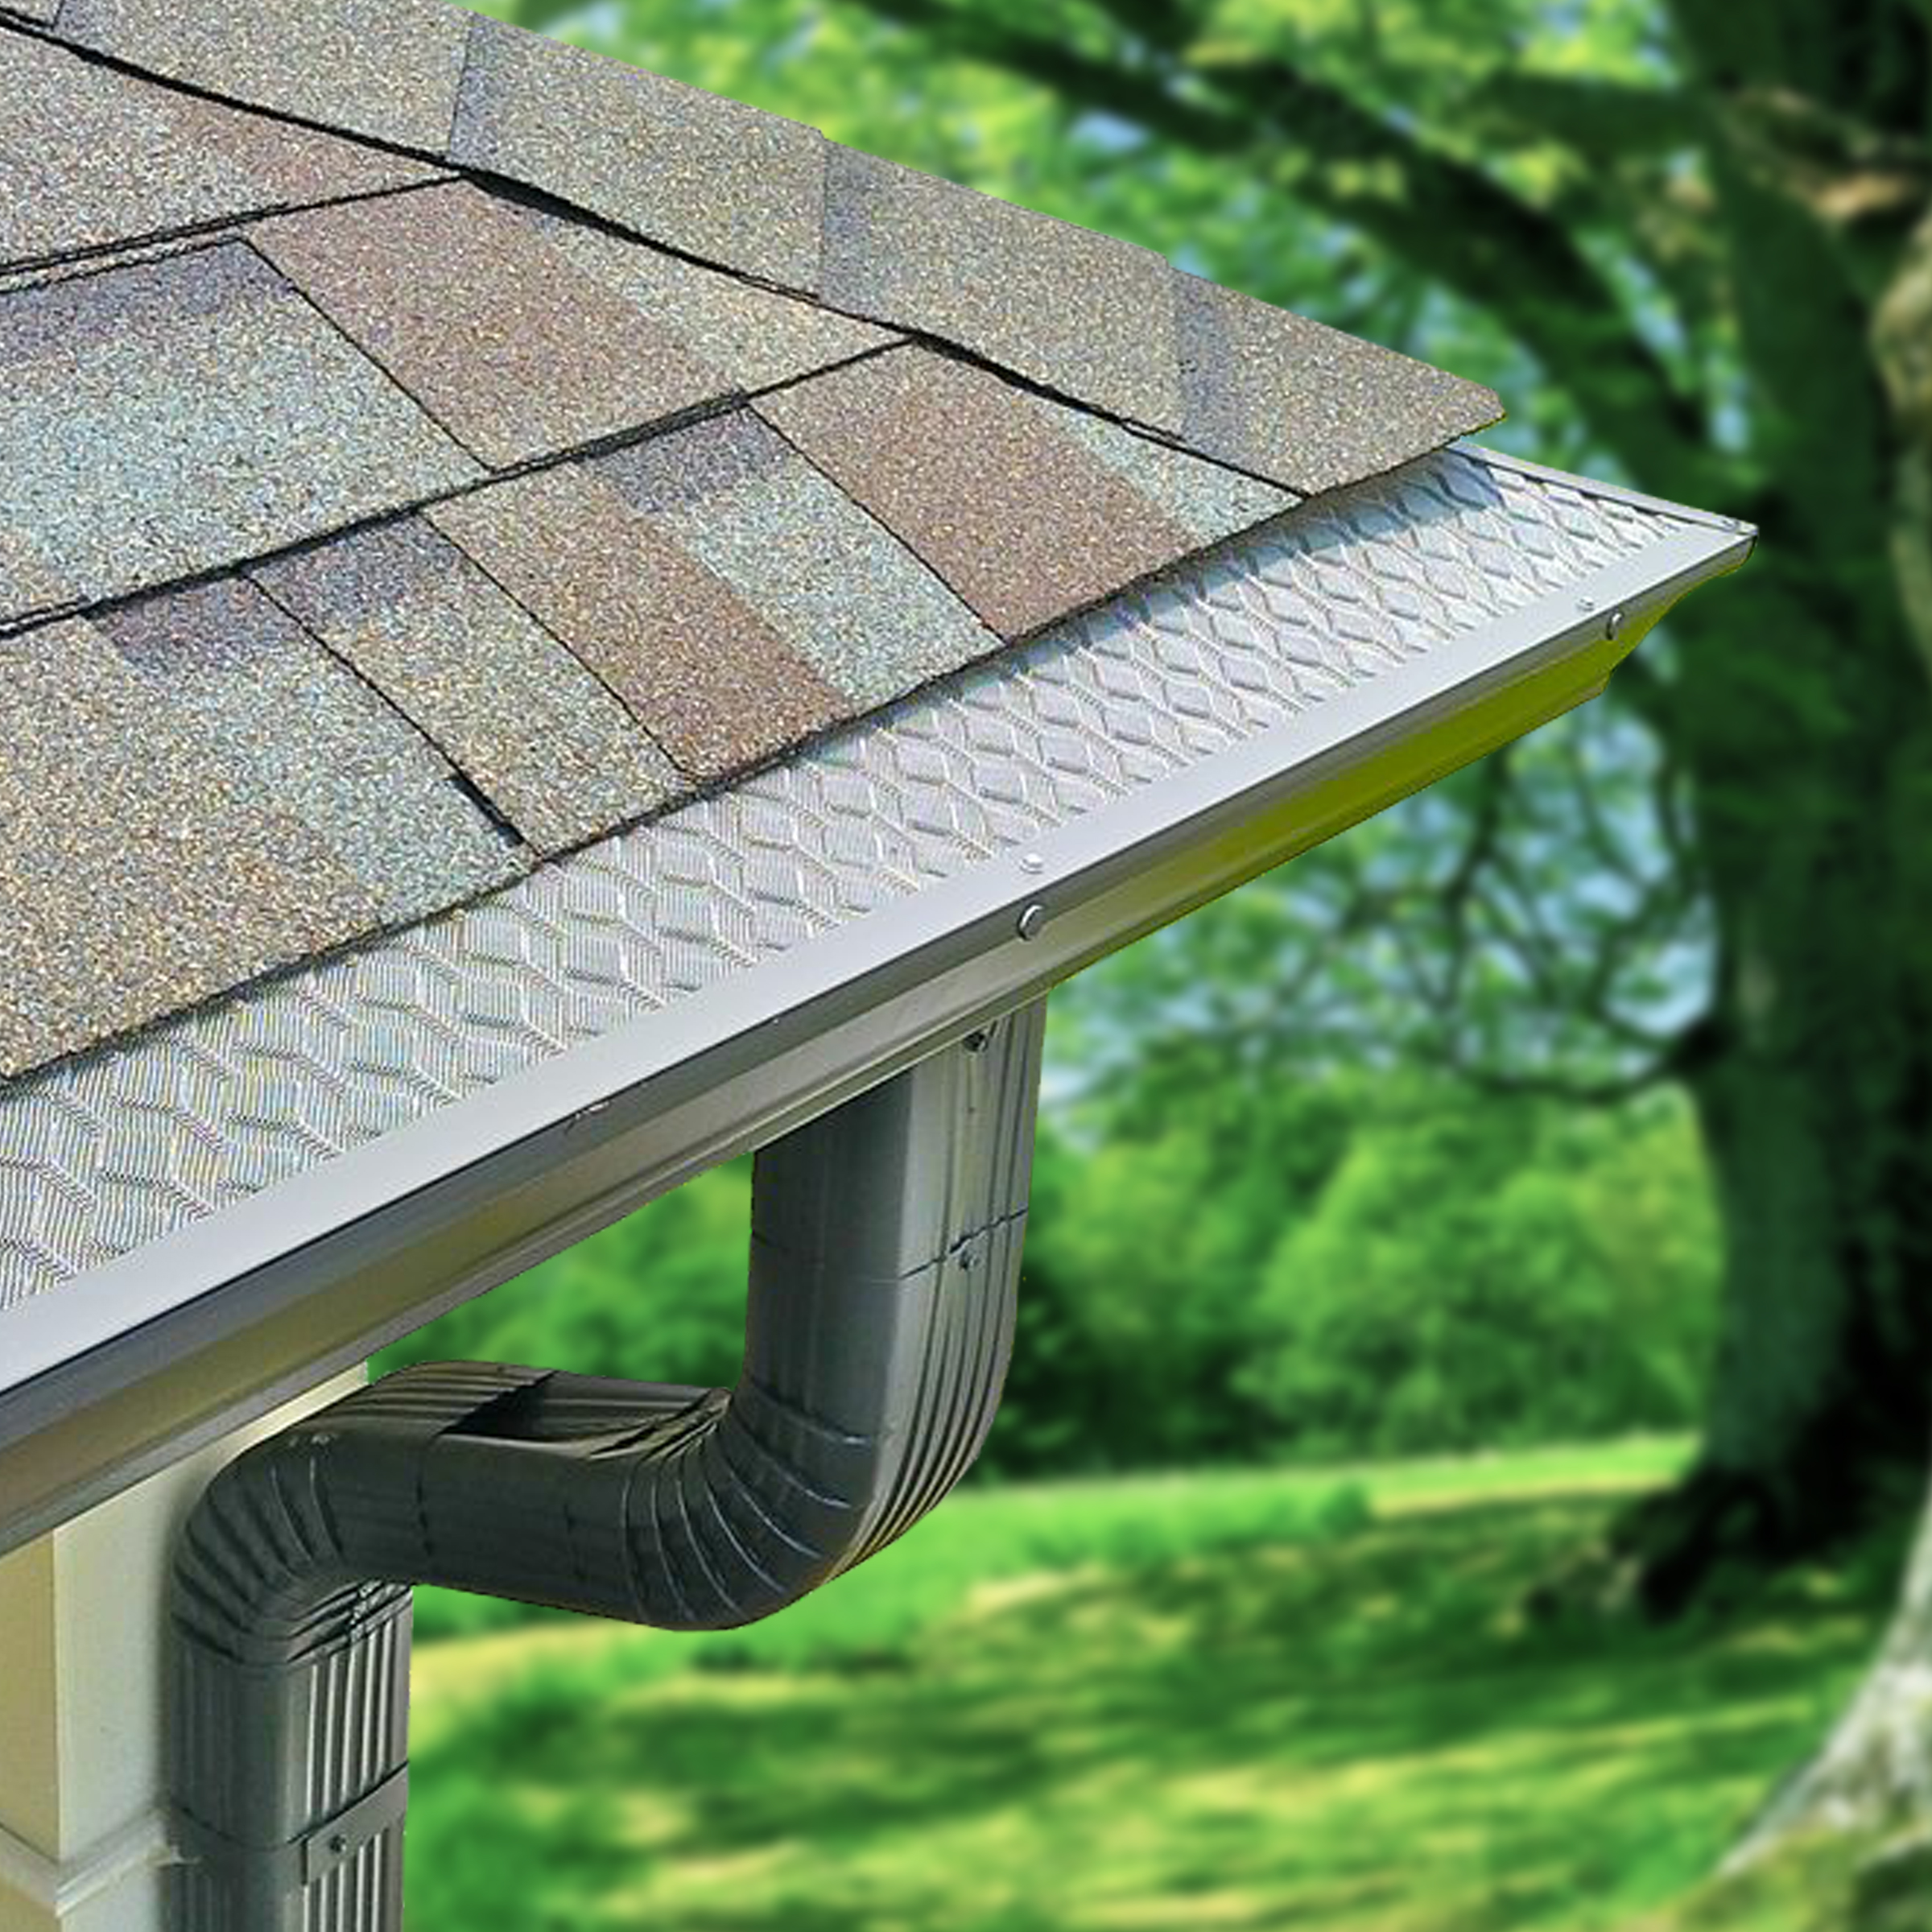 A HomeCraft gutter guard on the roof of a house near green trees.